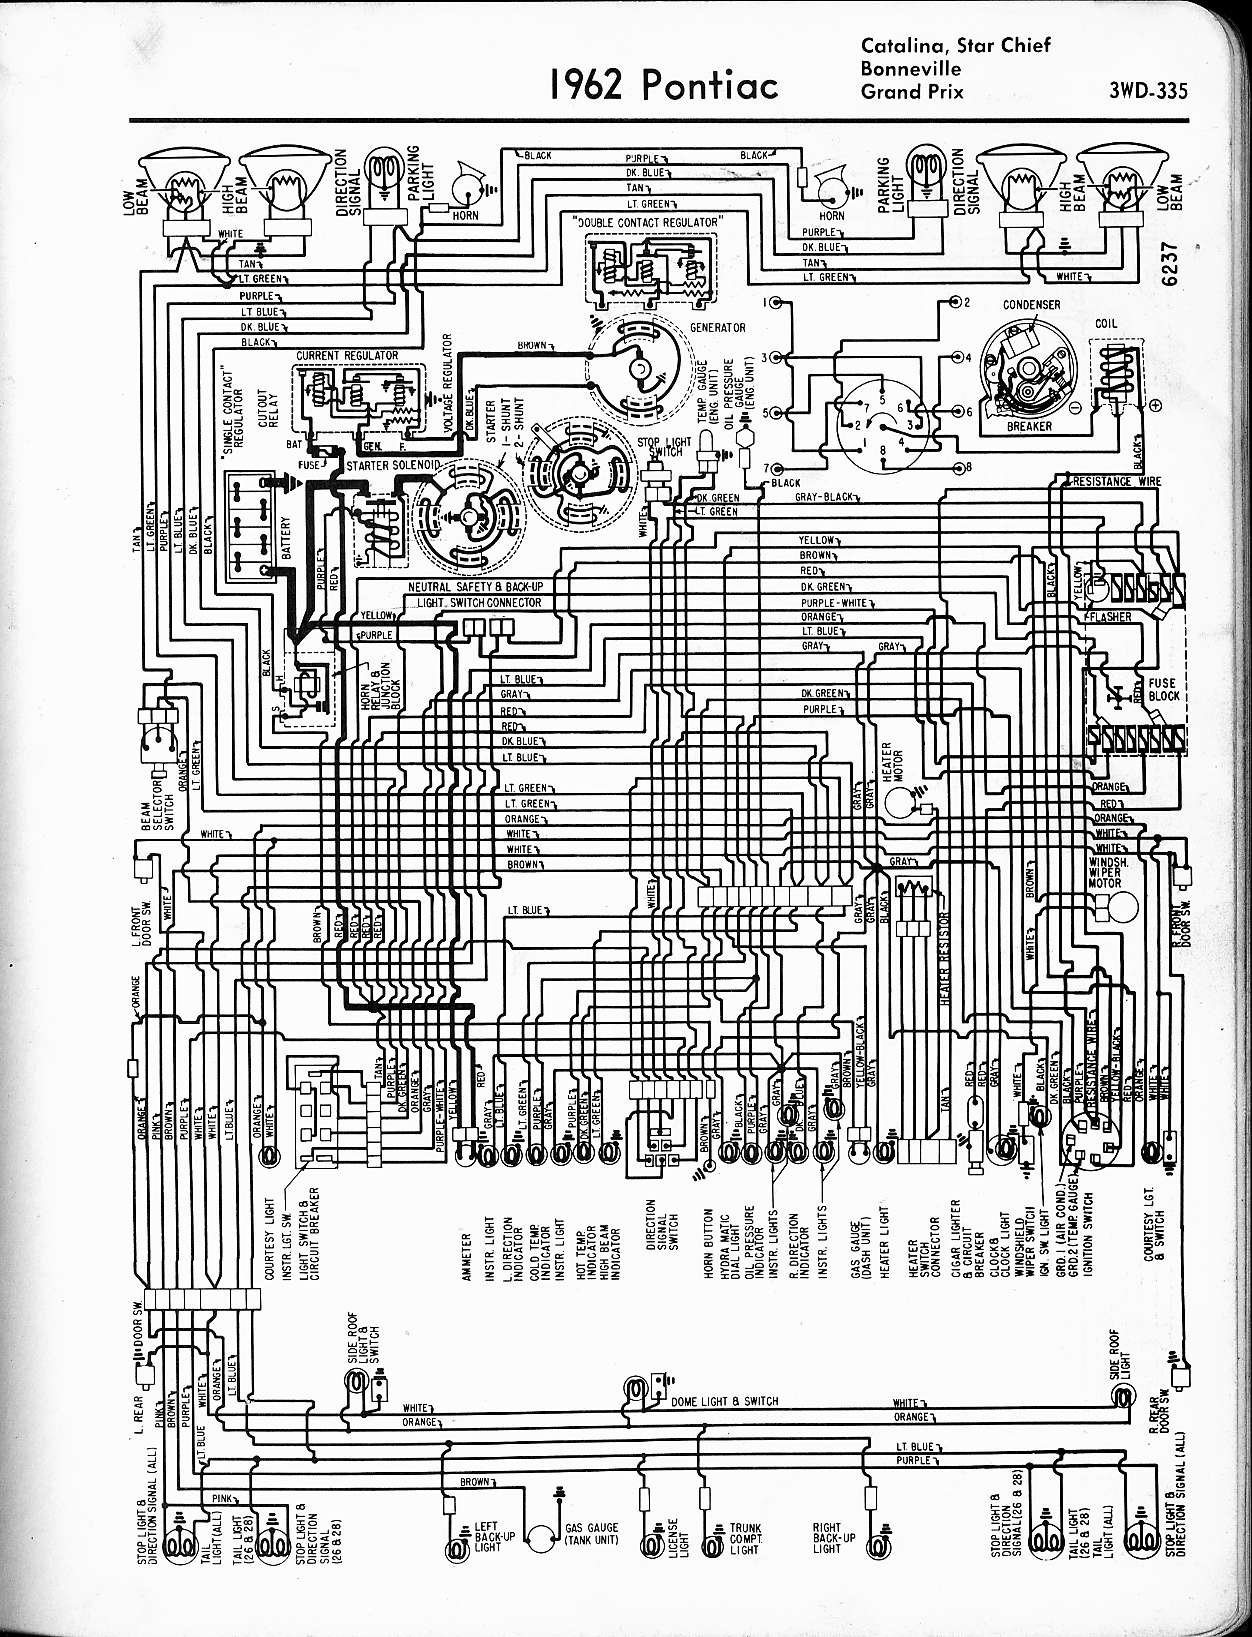 1990 Bonneville Fuse Box Diagram Wiring Schematic Library Chrysler New Yorker 1962 Catalina Star Chief Grand Prix